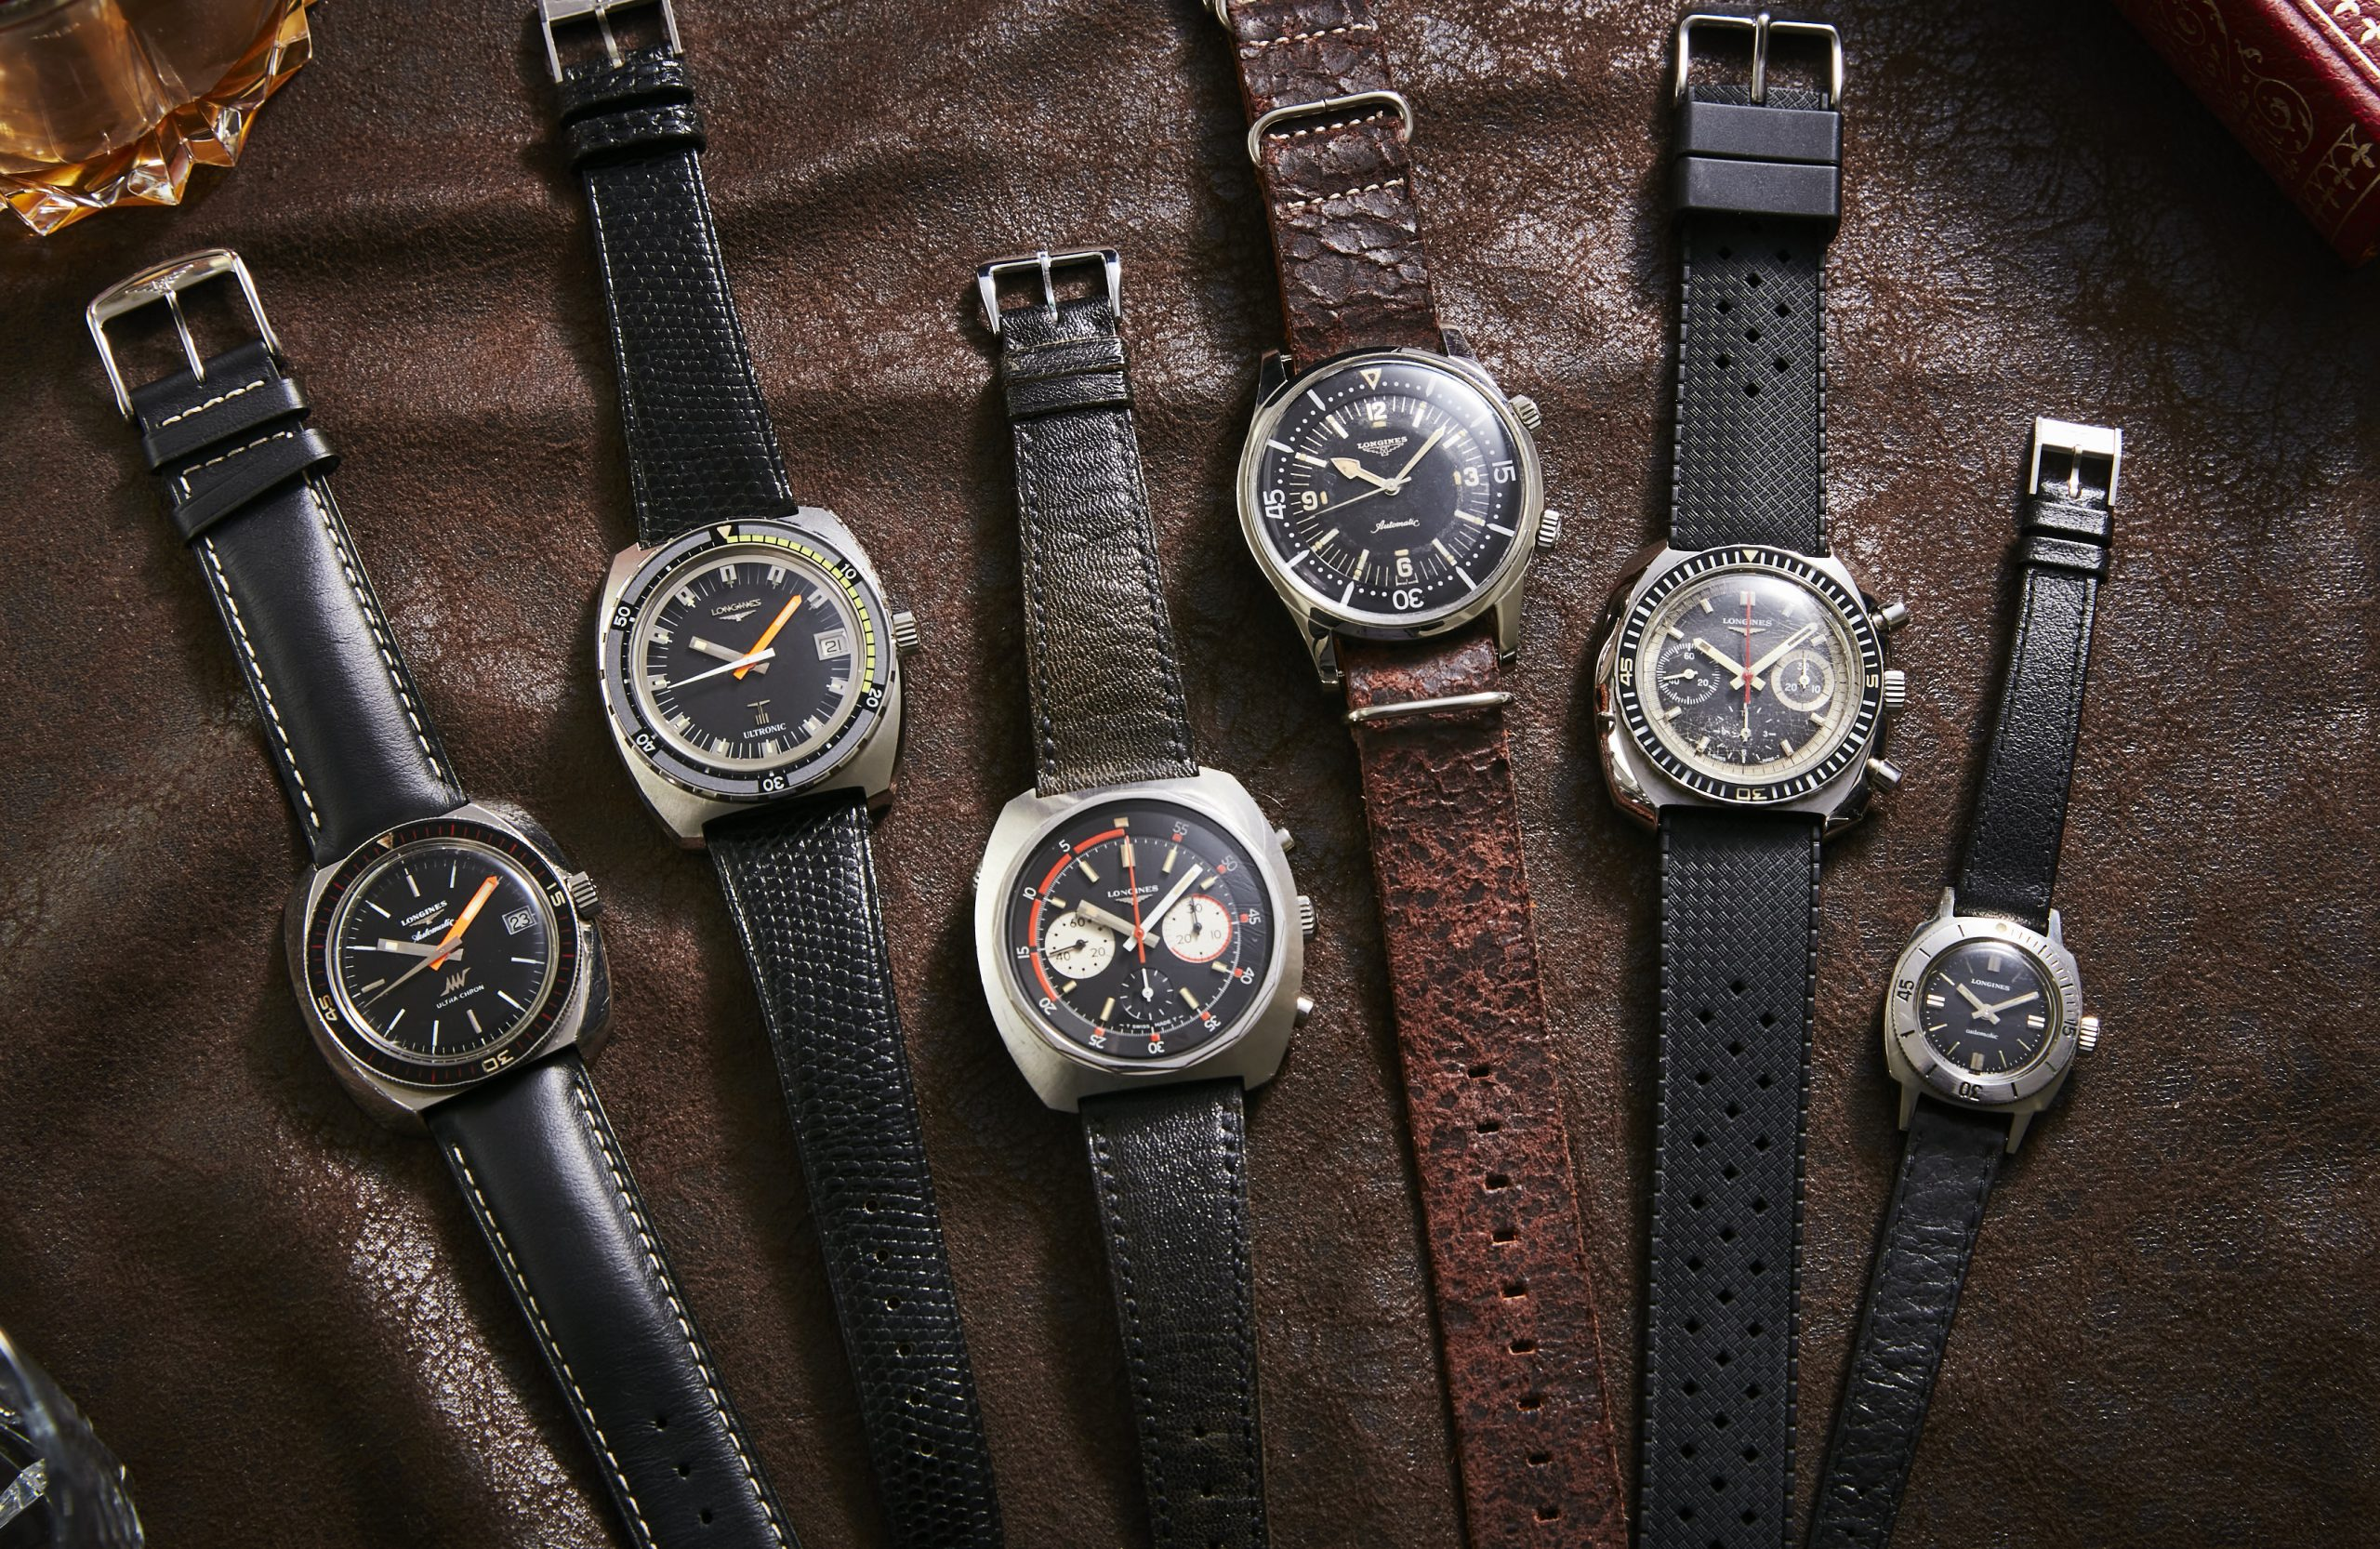 6 watches that tell the history of Longines dive watches in the '60s and '70s